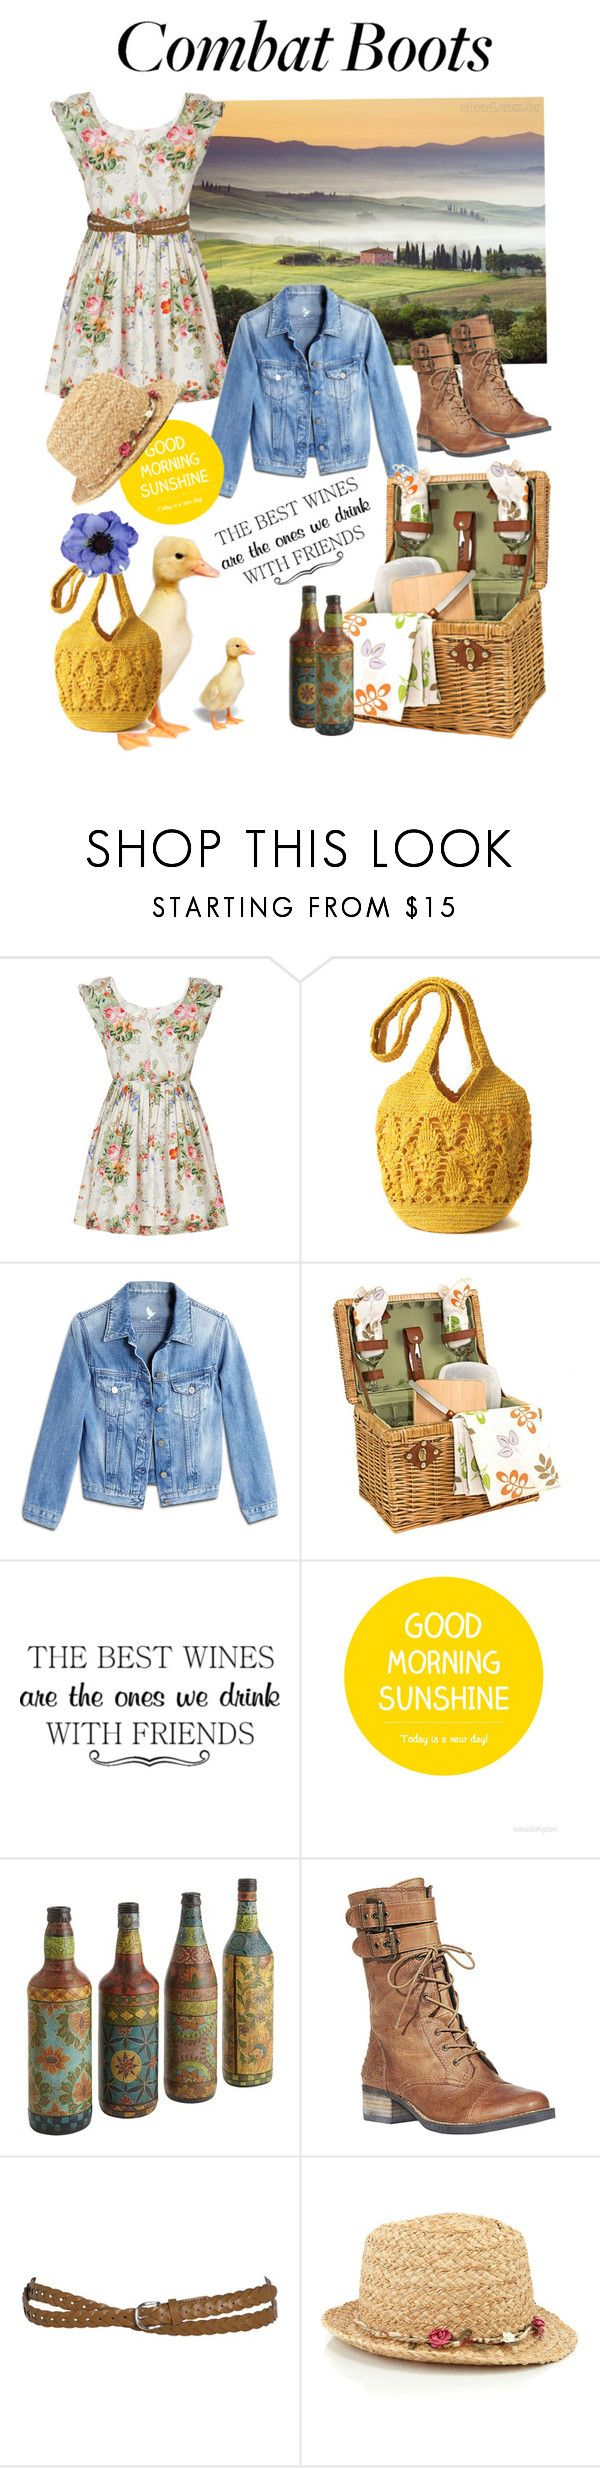 """""""Combat boots"""" by inestylebeyourself ❤ liked on Polyvore featuring Anna Sui, Mar y Sol, M.i.h Jeans, WALL, Pier 1 Imports, Steve Madden, Accessorize and Clips"""